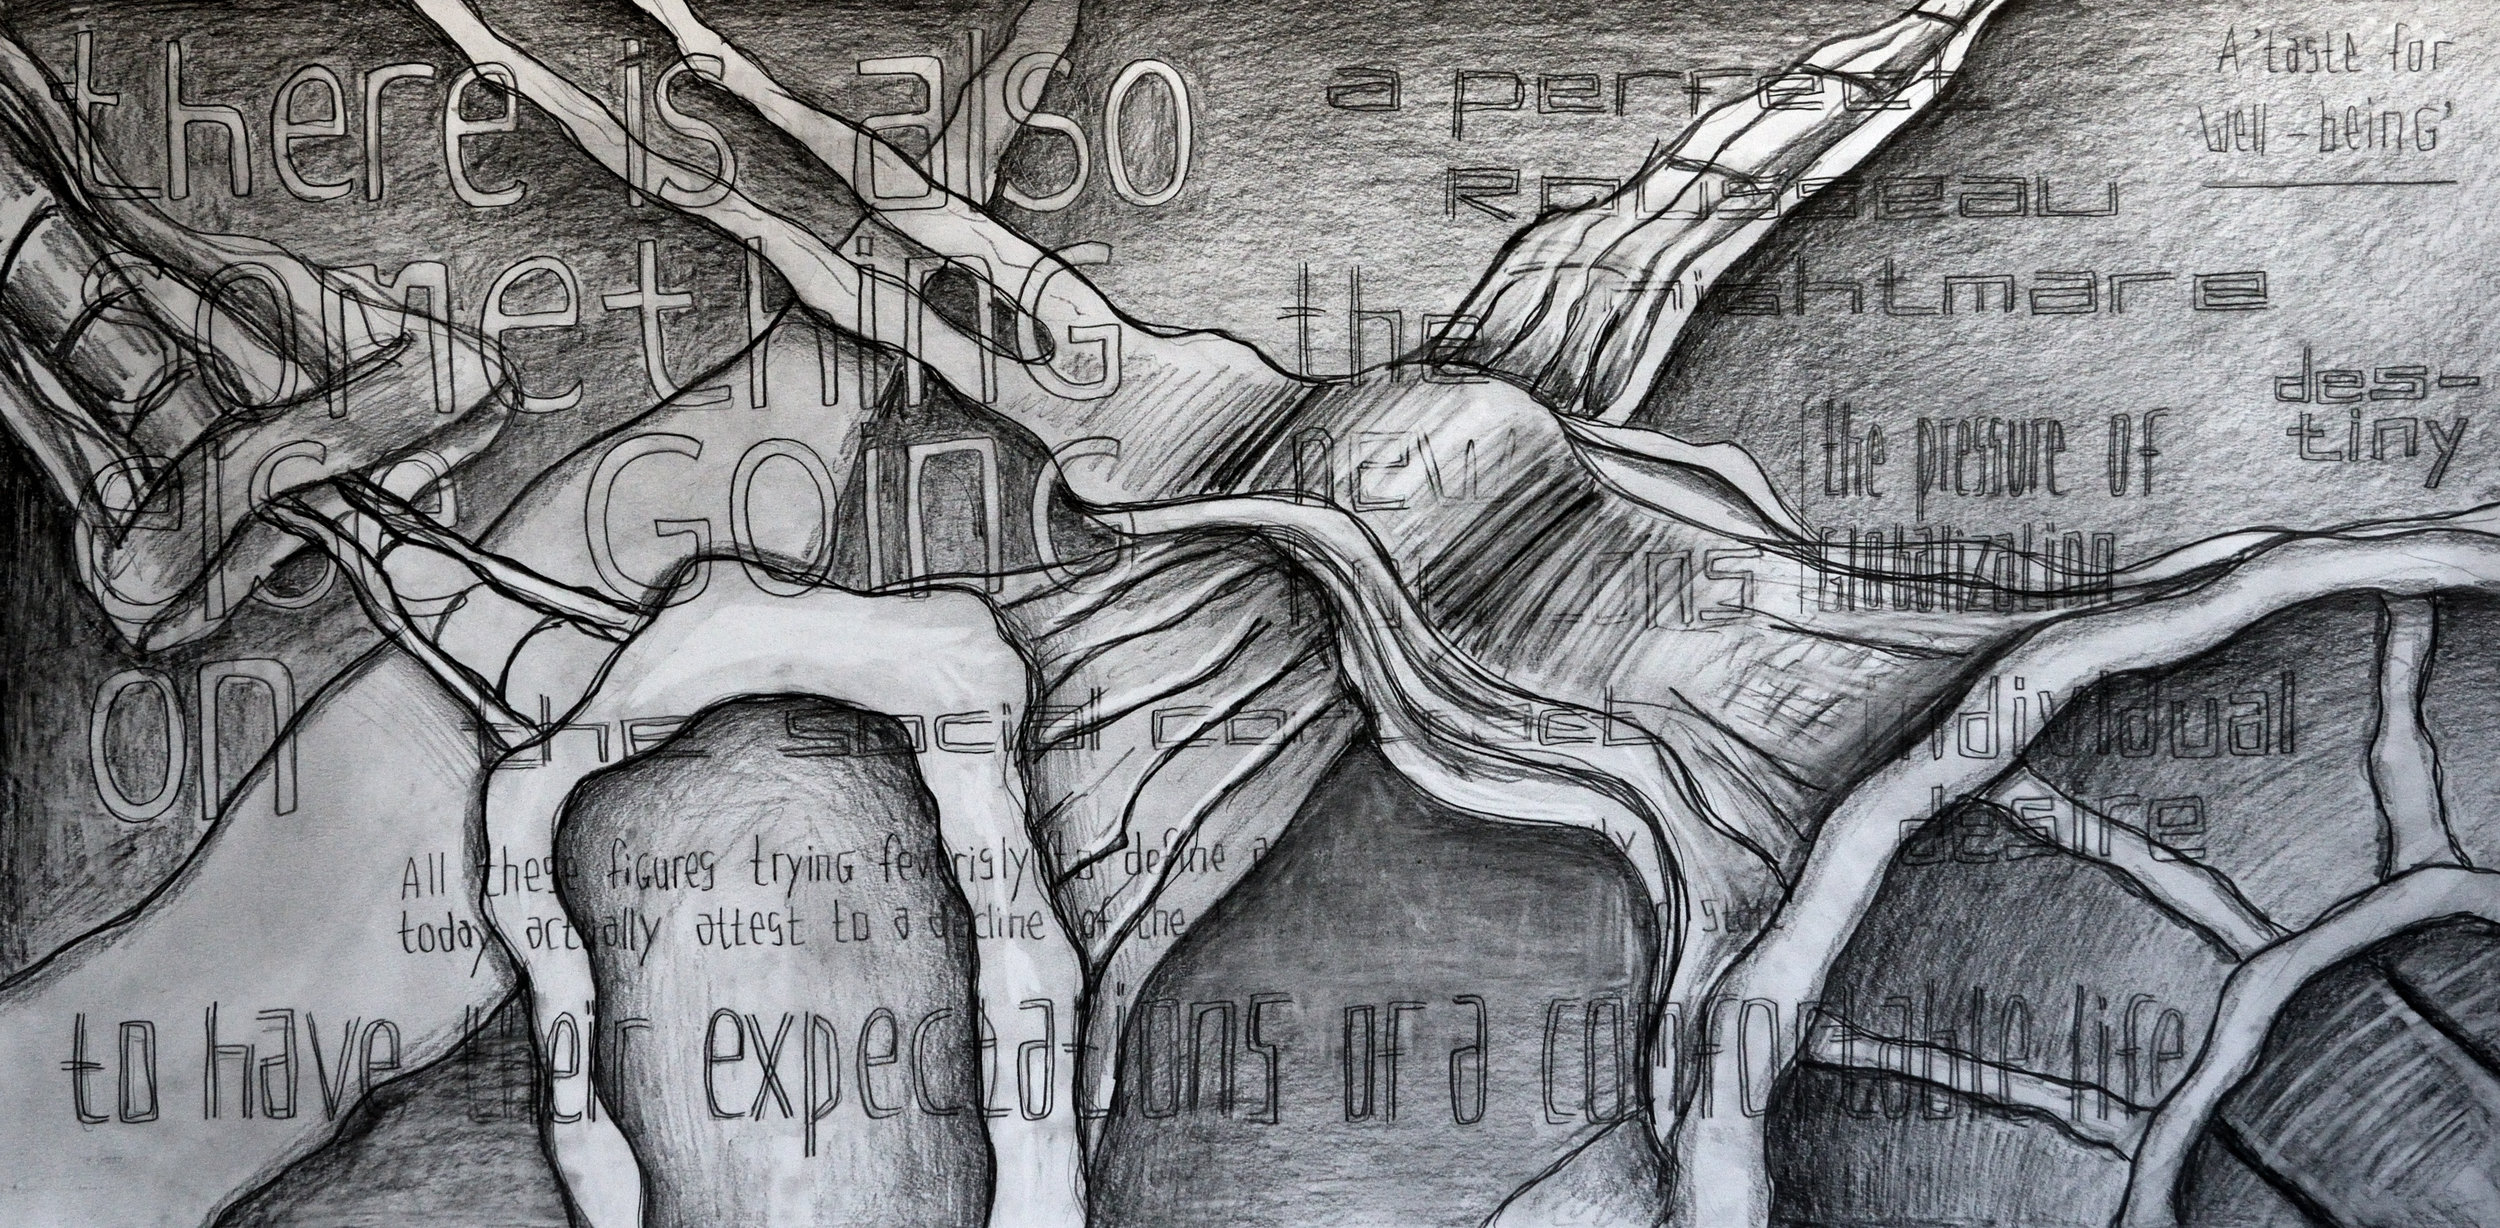 The Pressure of a Perfect Life, pencil on paper, 70x140cm